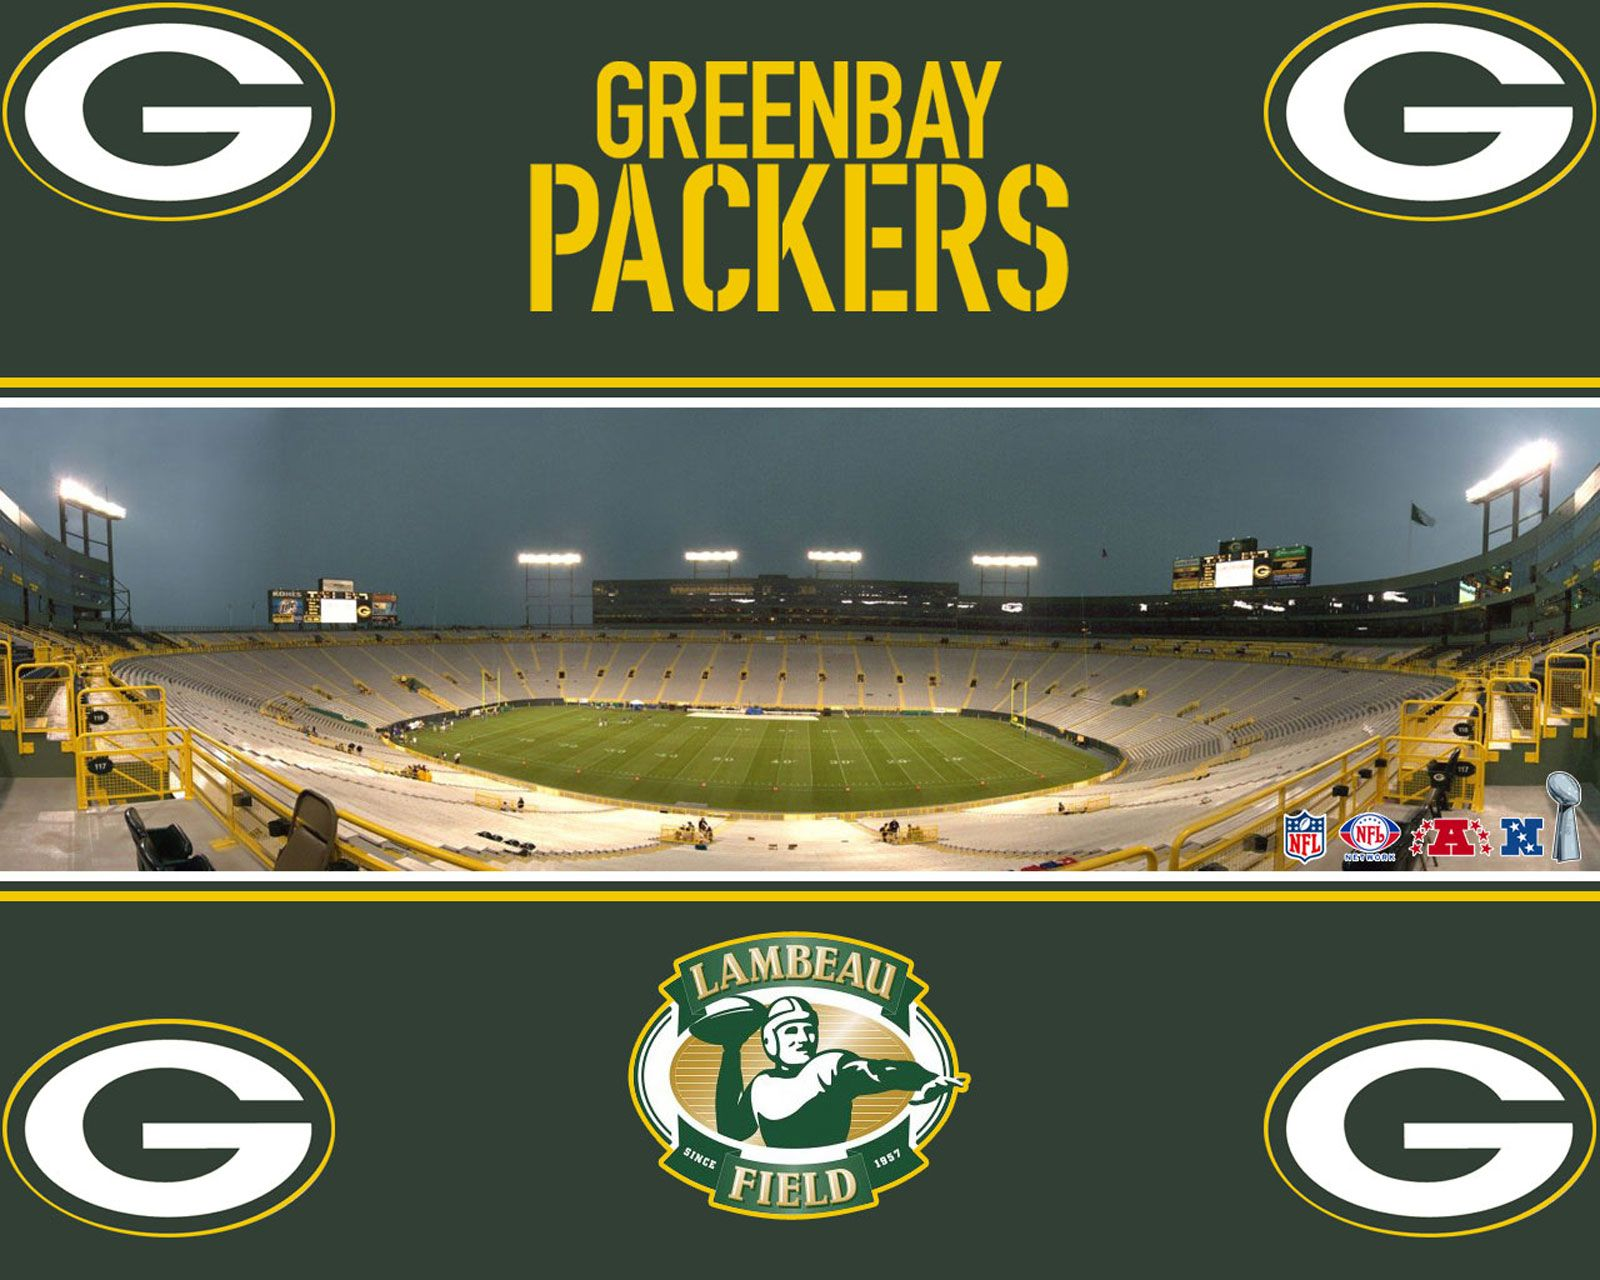 Lambeau Field Green Bay Packers Wallpaper Green Bay Packers Wallpaper Green Bay Packers Green Bay Packers Pictures